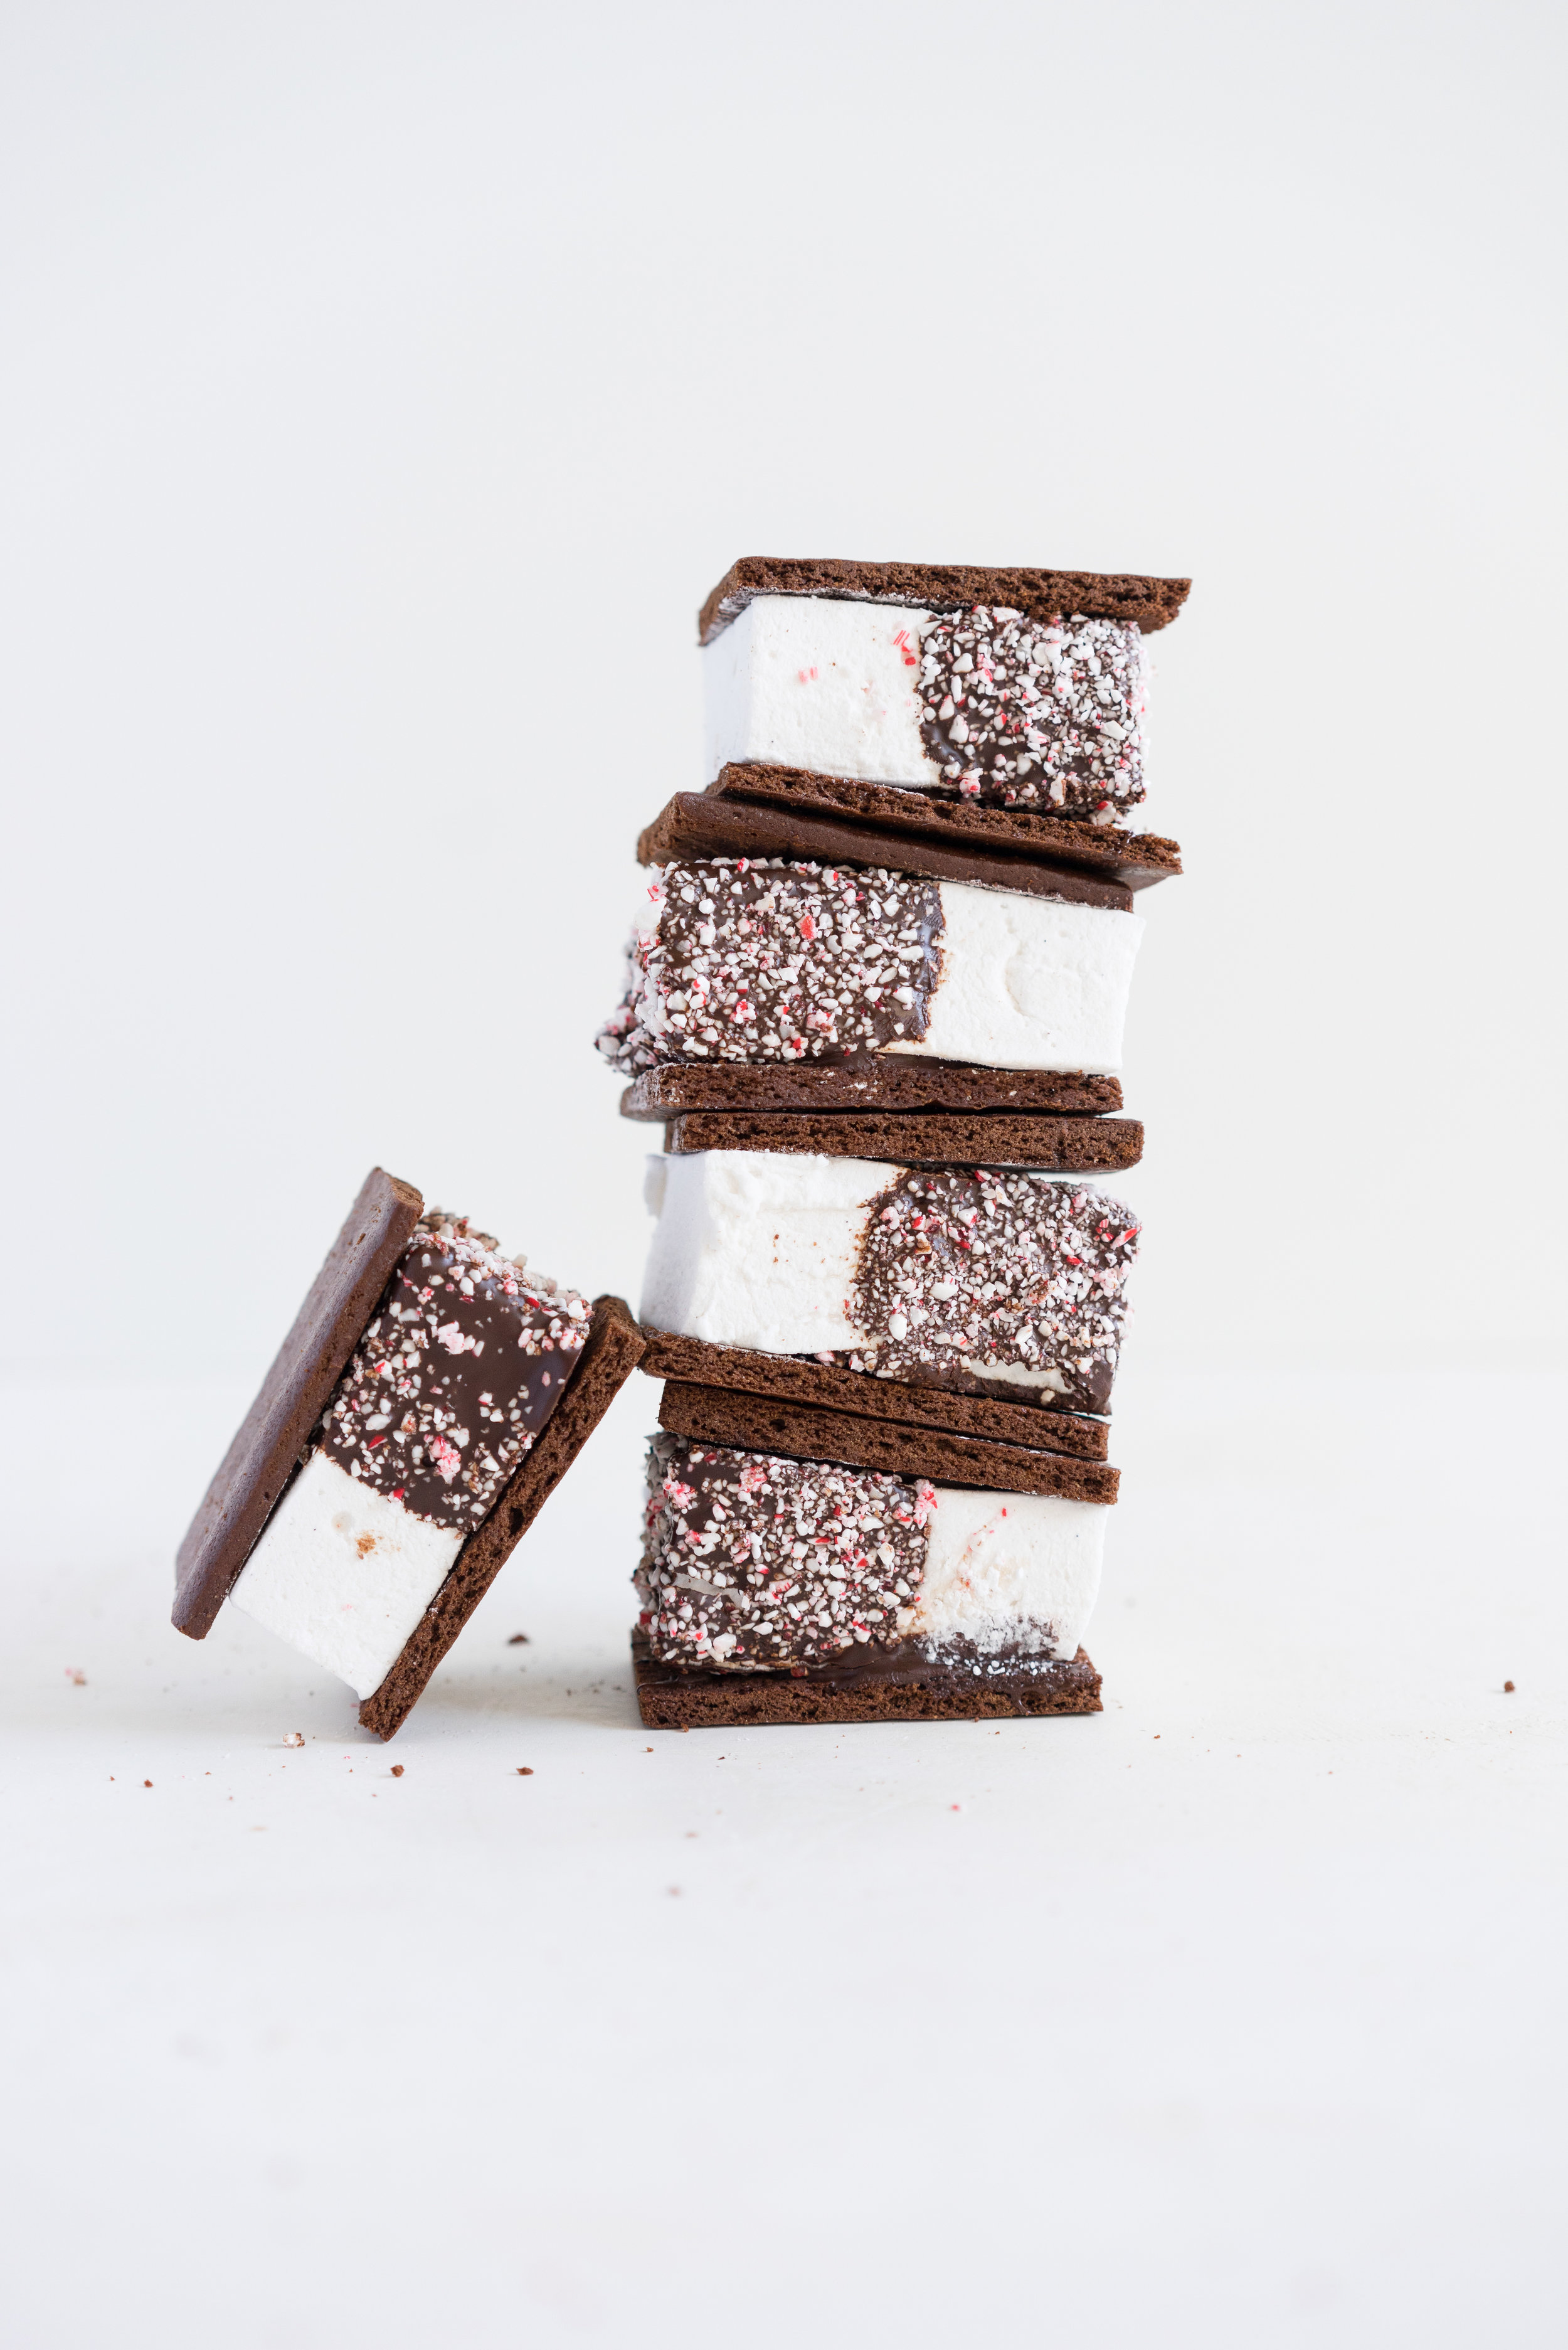 Peppermint S'mores with Chocolate Graham Crackers from Cloudy Kitchen. Puffy peppermint marshmallows are dipped in chocolate and rolled in candy canes, before being sandwiched between two chocolate graham crackers. A christmas twist on a holiday favourite